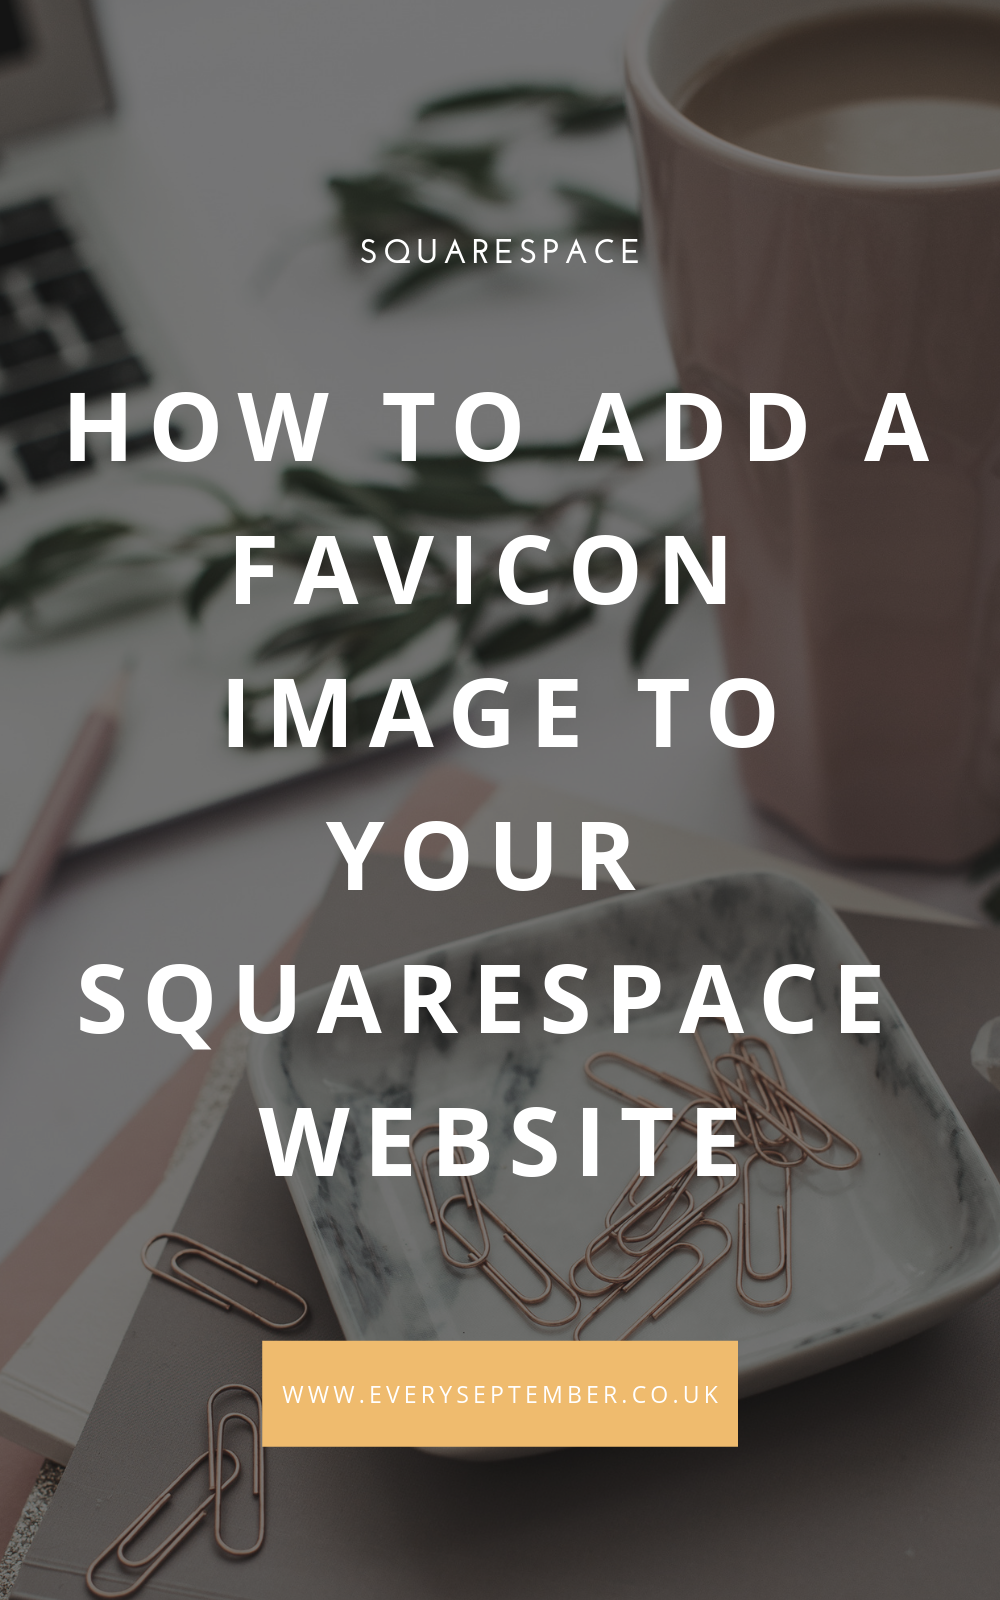 How to add a favicon image to your Squarespace website